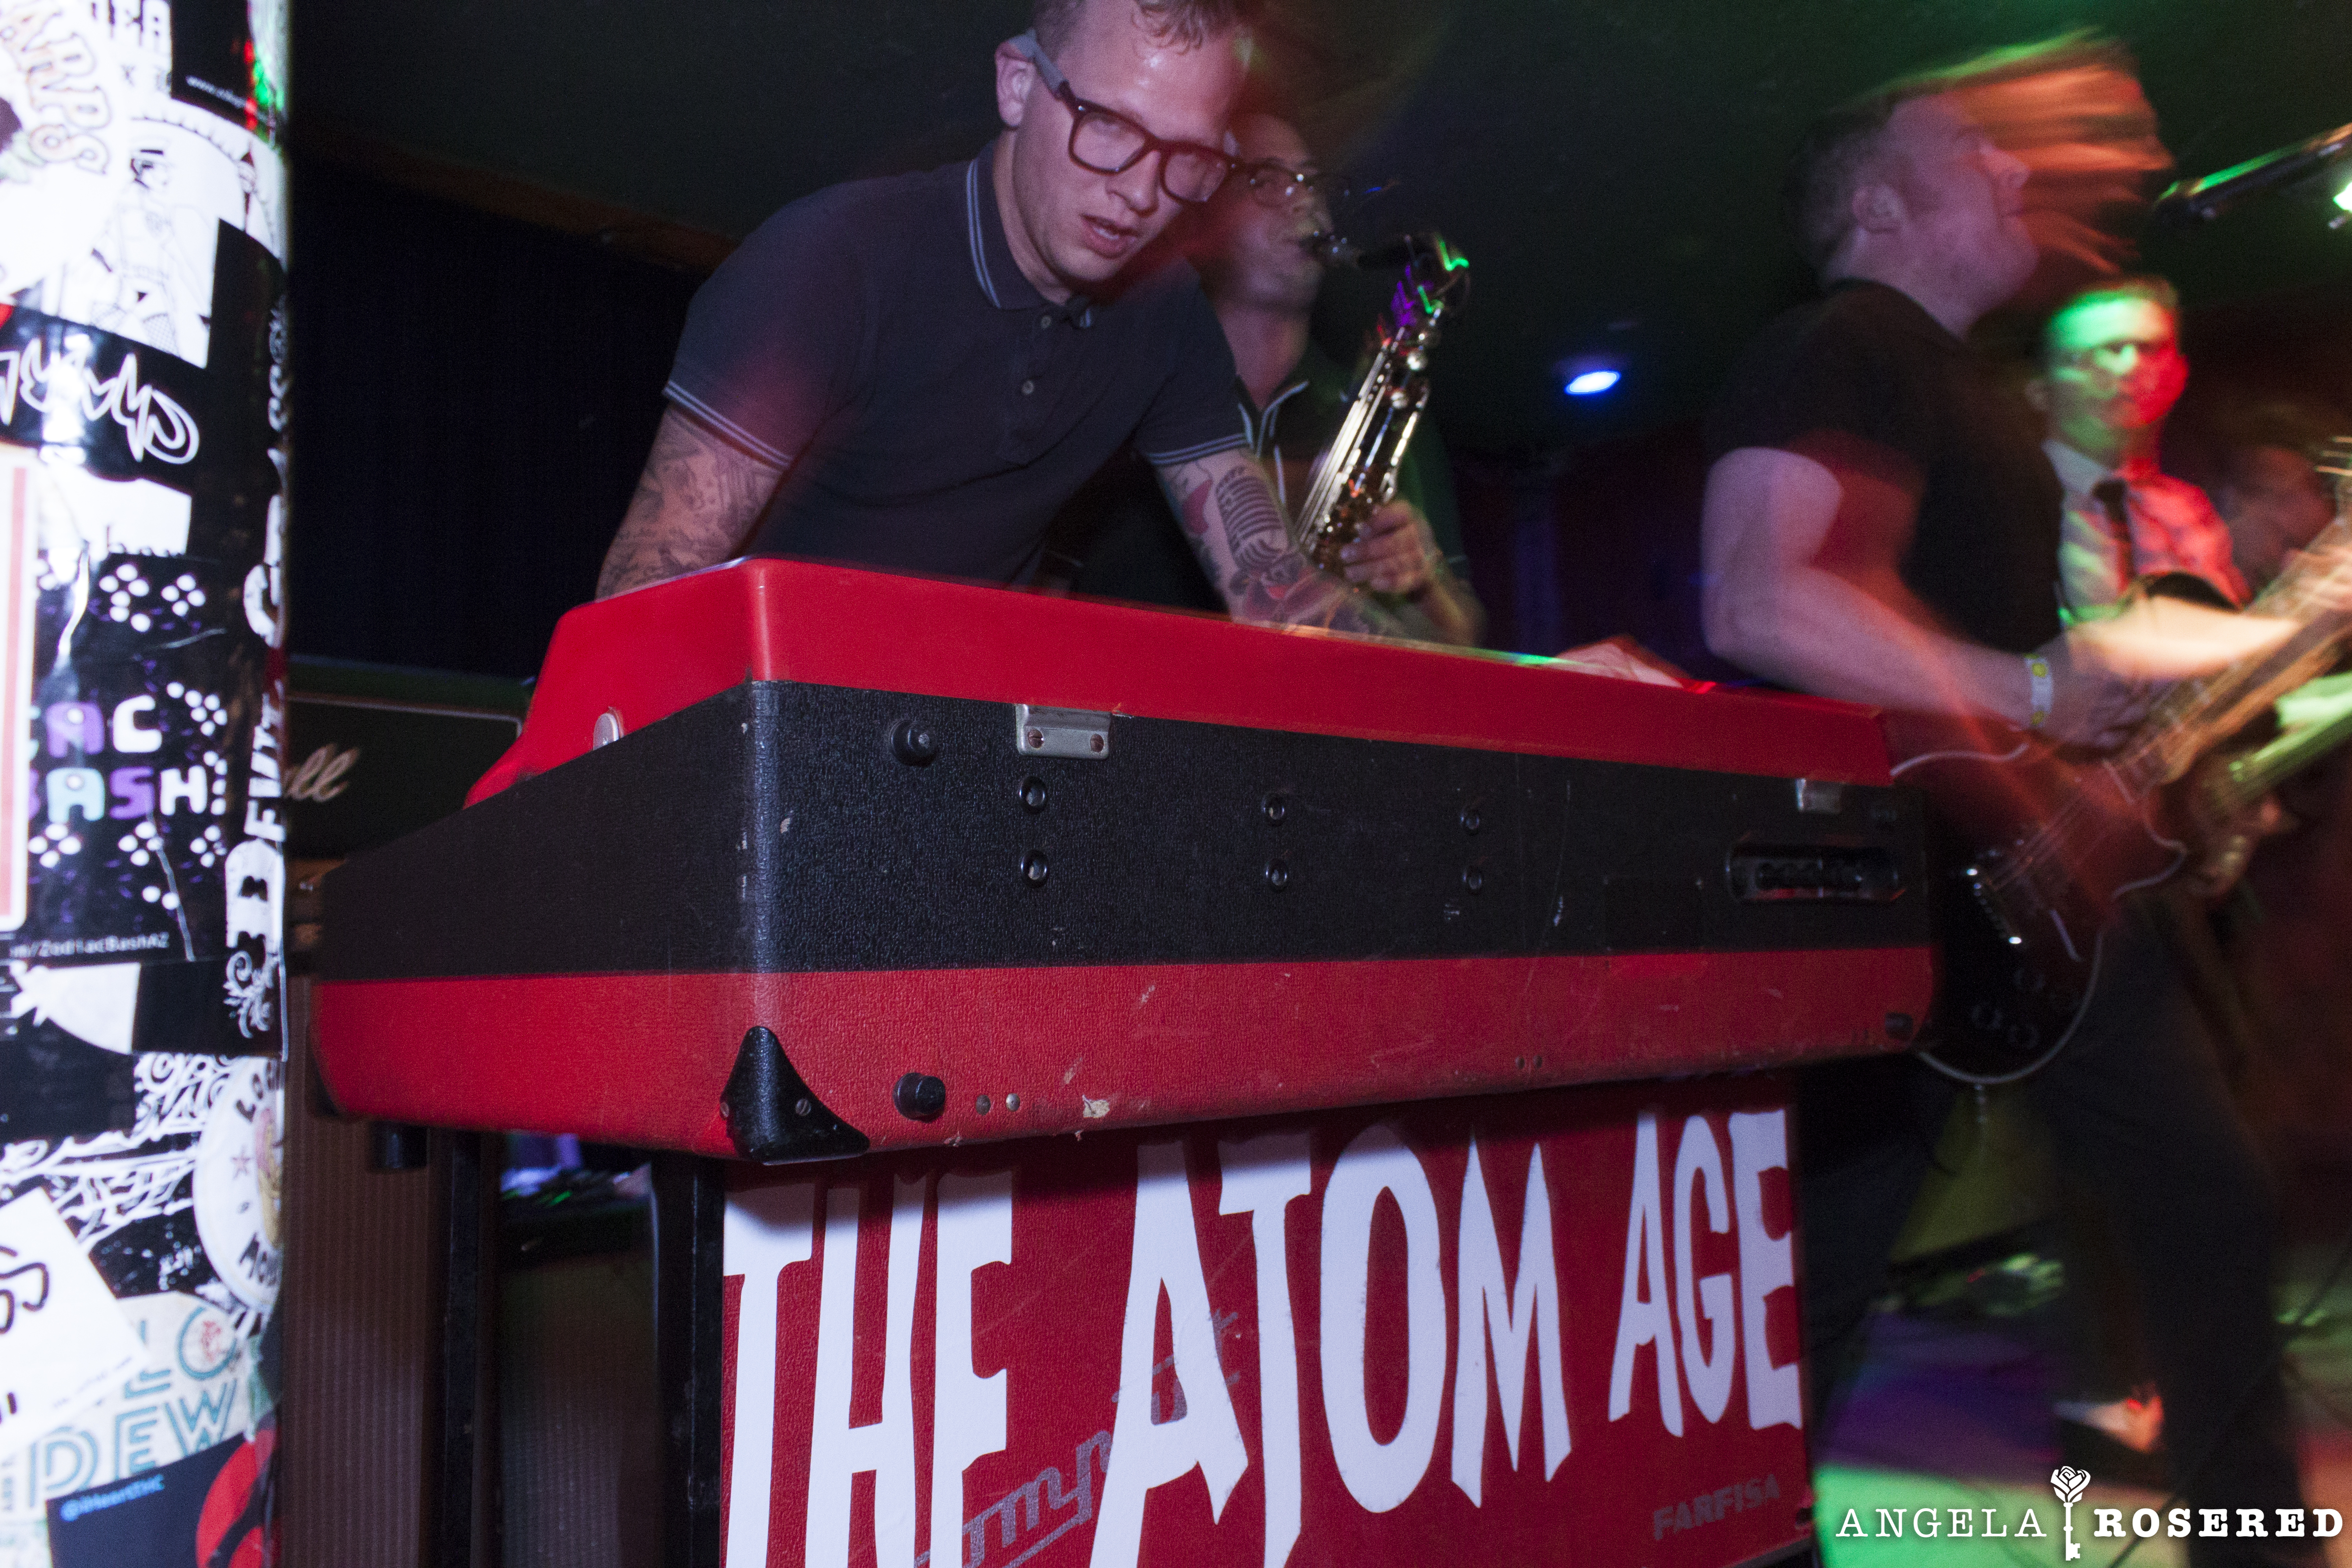 Atom Age 07/16 at Yucca Tap Room